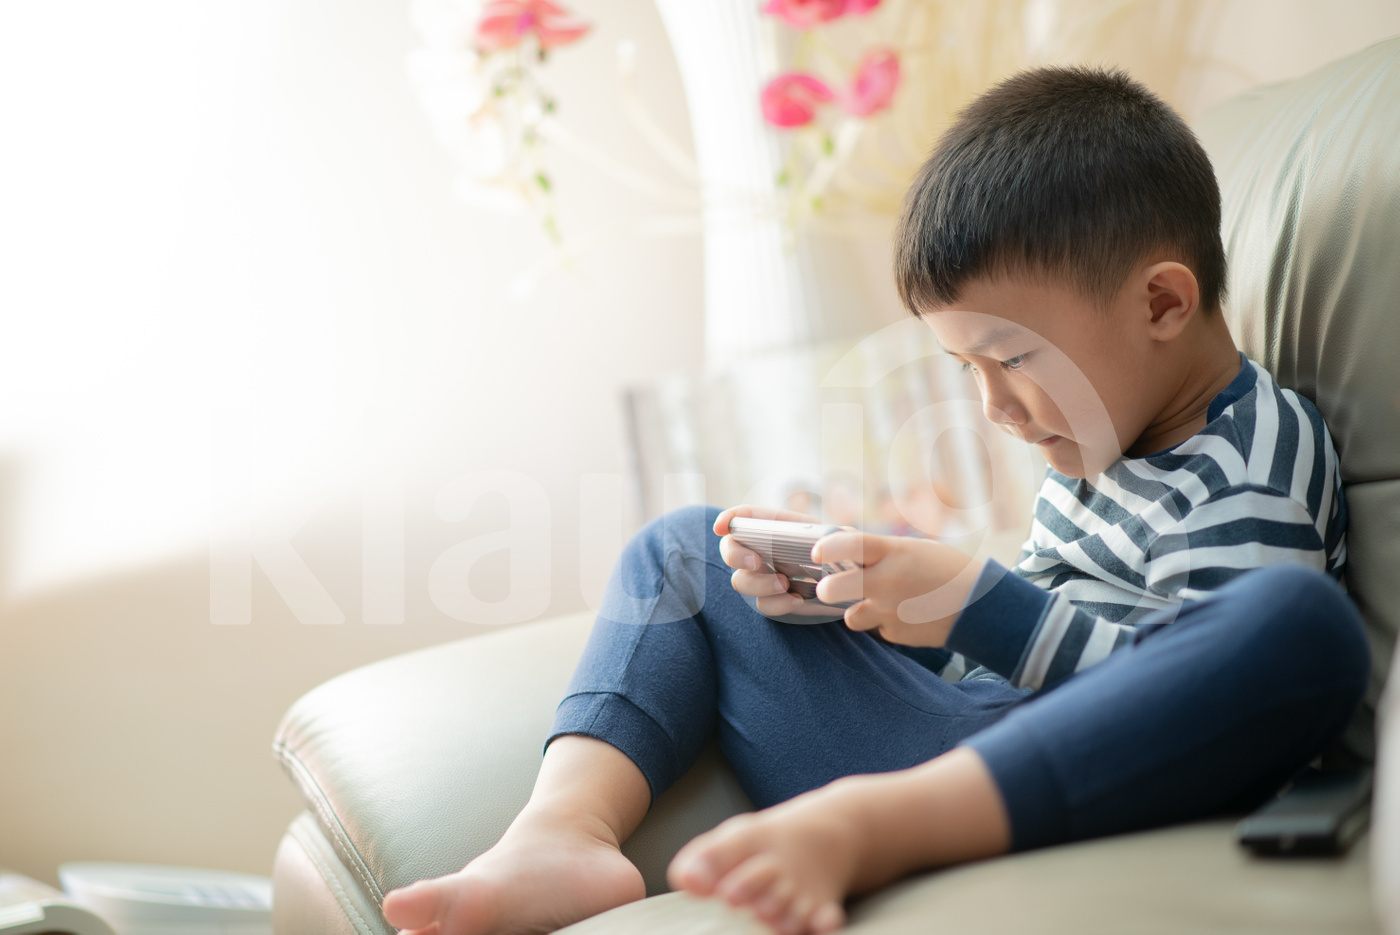 Asian child at home during lockdown, playing with phone